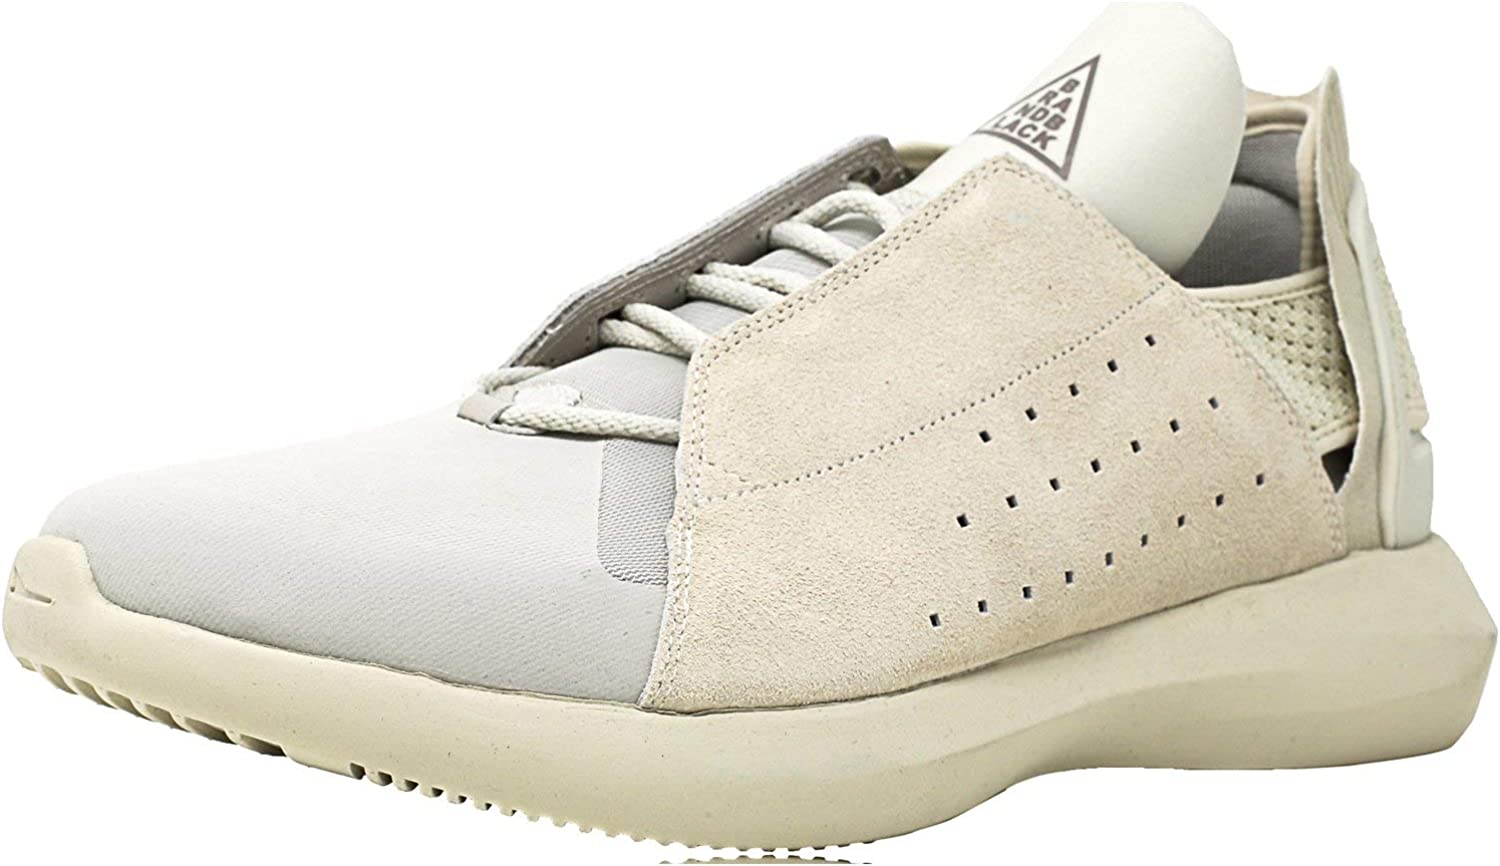 Brandblack Men's Gambetto Ankle-High Leather Tennis shoes